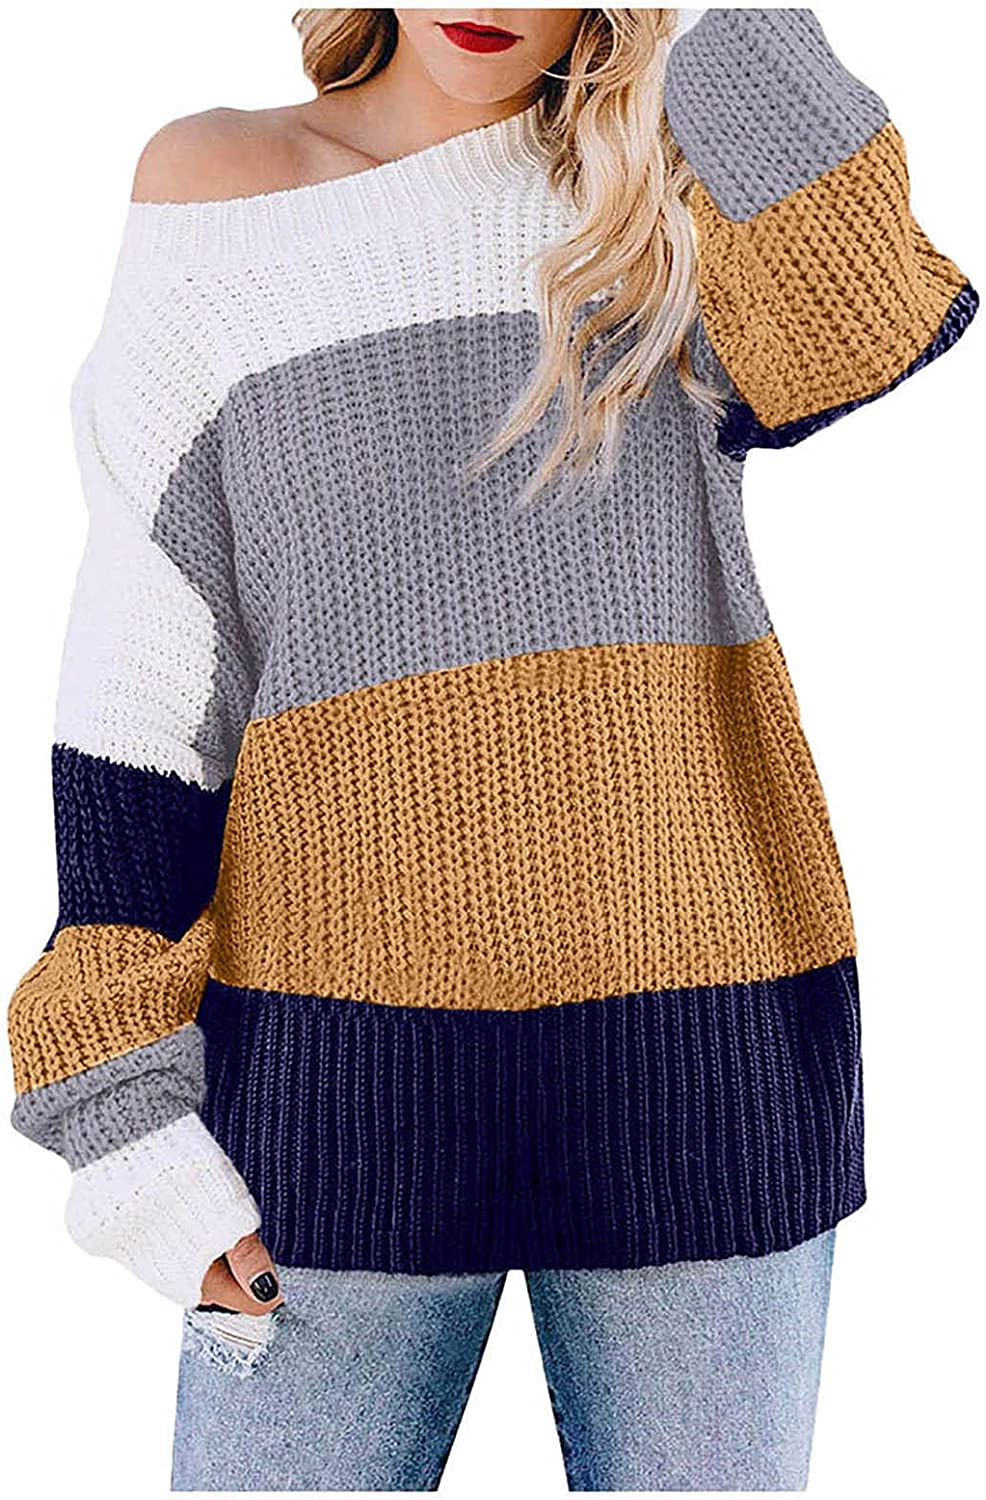 Sunhusing Women's Casual Loose Sweater Color Block Knit Pullover Off Shoulder Comfy Oversized Jumper Knitwear with Pocket